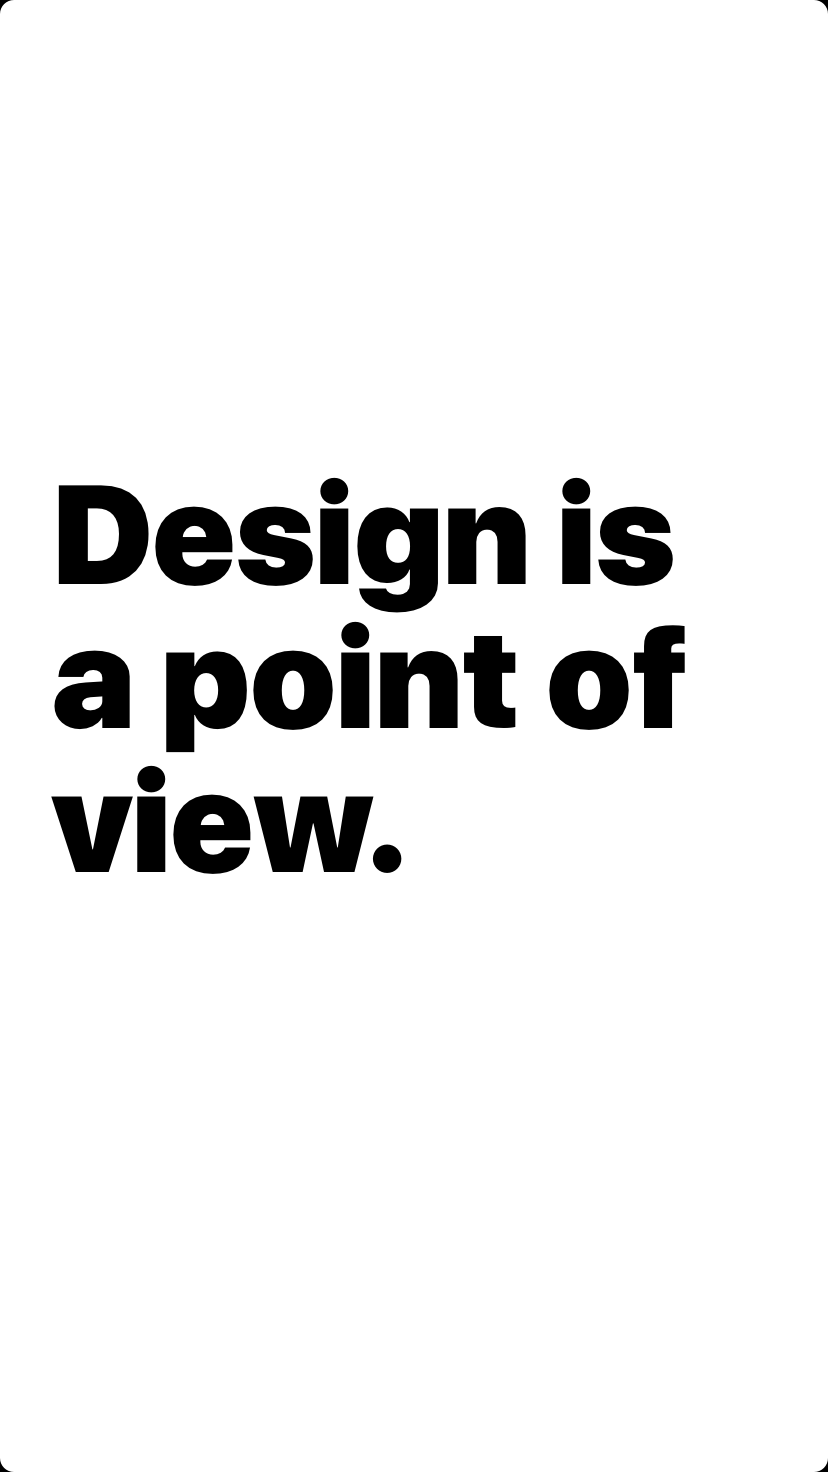 Design is a point of view.